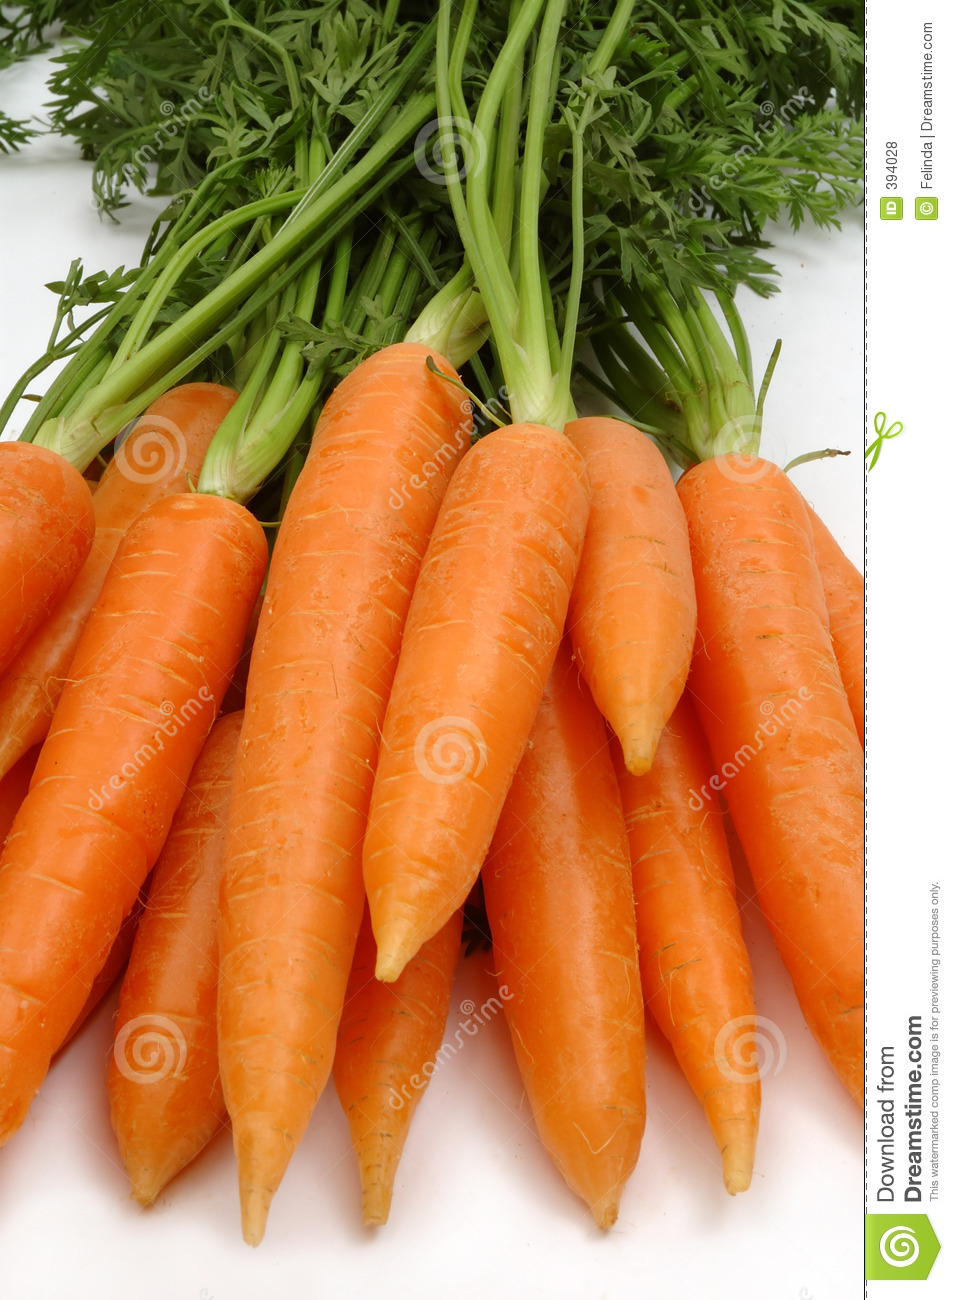 Carrots stock photo. Image of roots, carrot, tasty, healthy